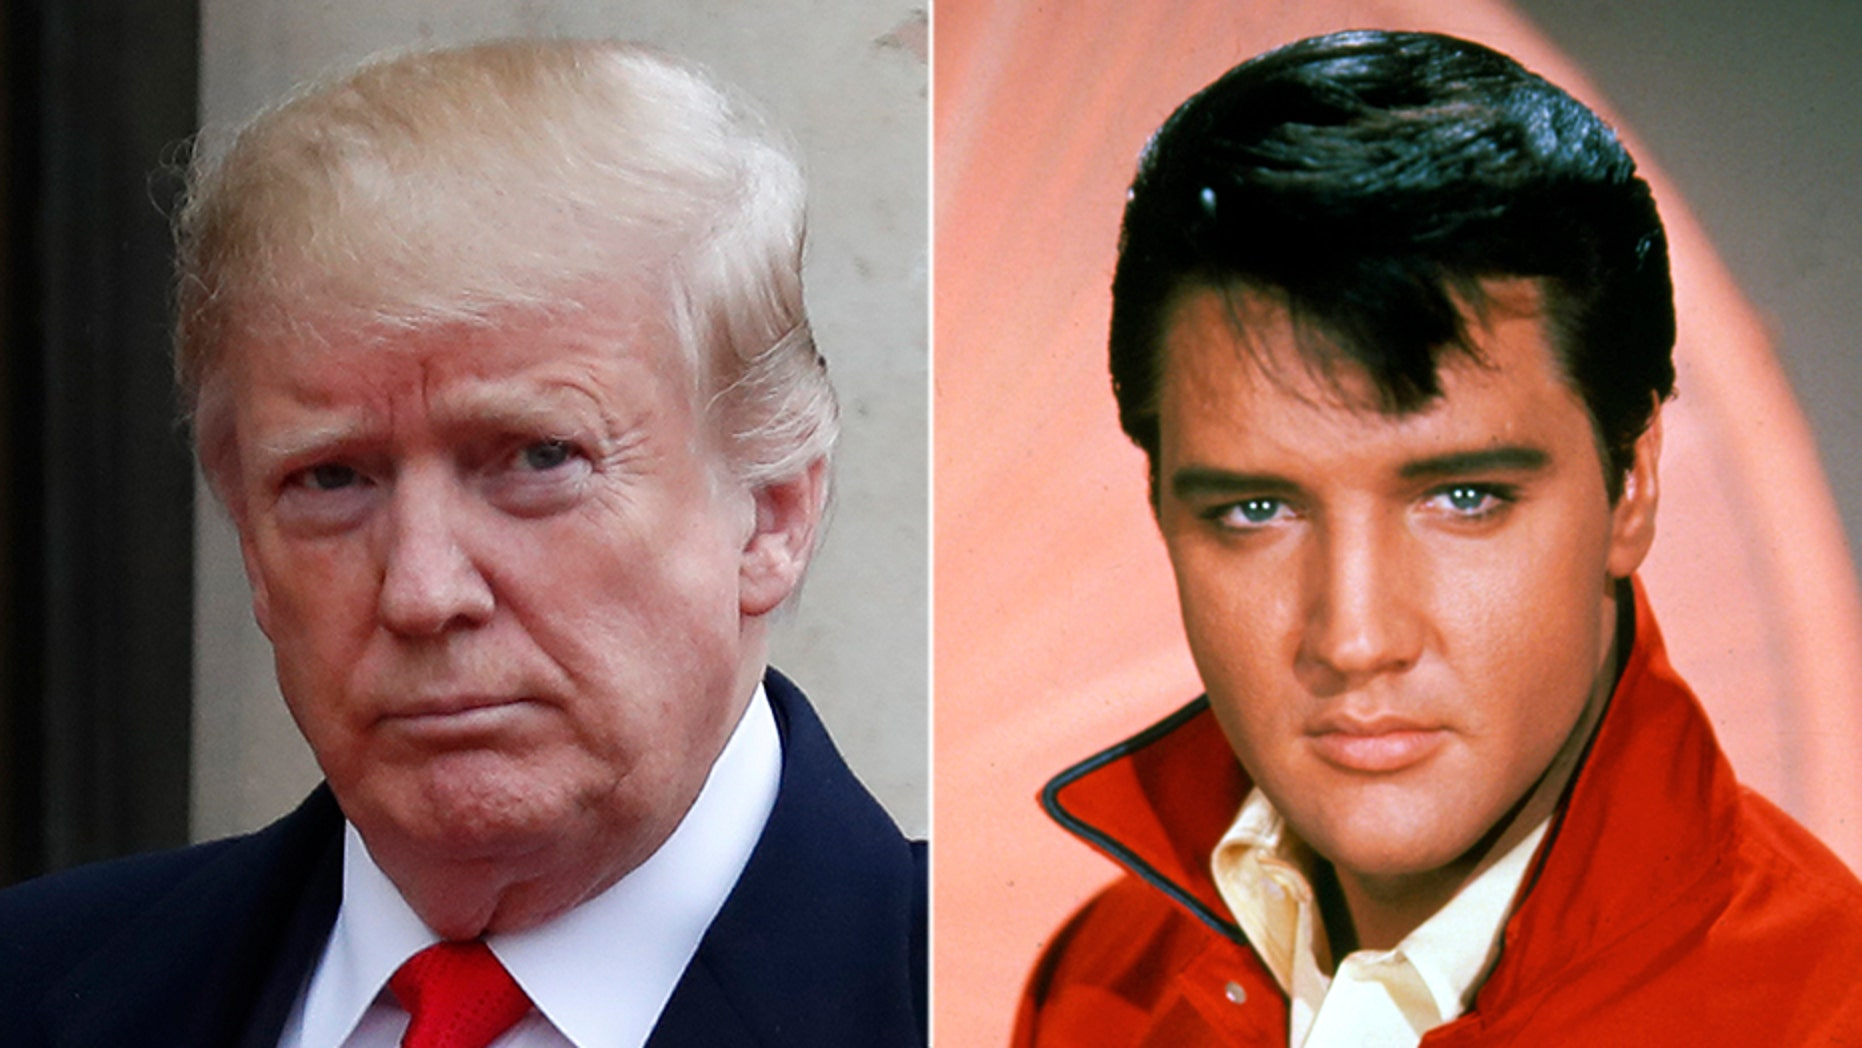 President Trump awarded the Presidential Medal of Freedom to seven Americans on Friday, including the late rock star Elvis Presley, though even that gesture is coming under fire from liberals. (Getty)